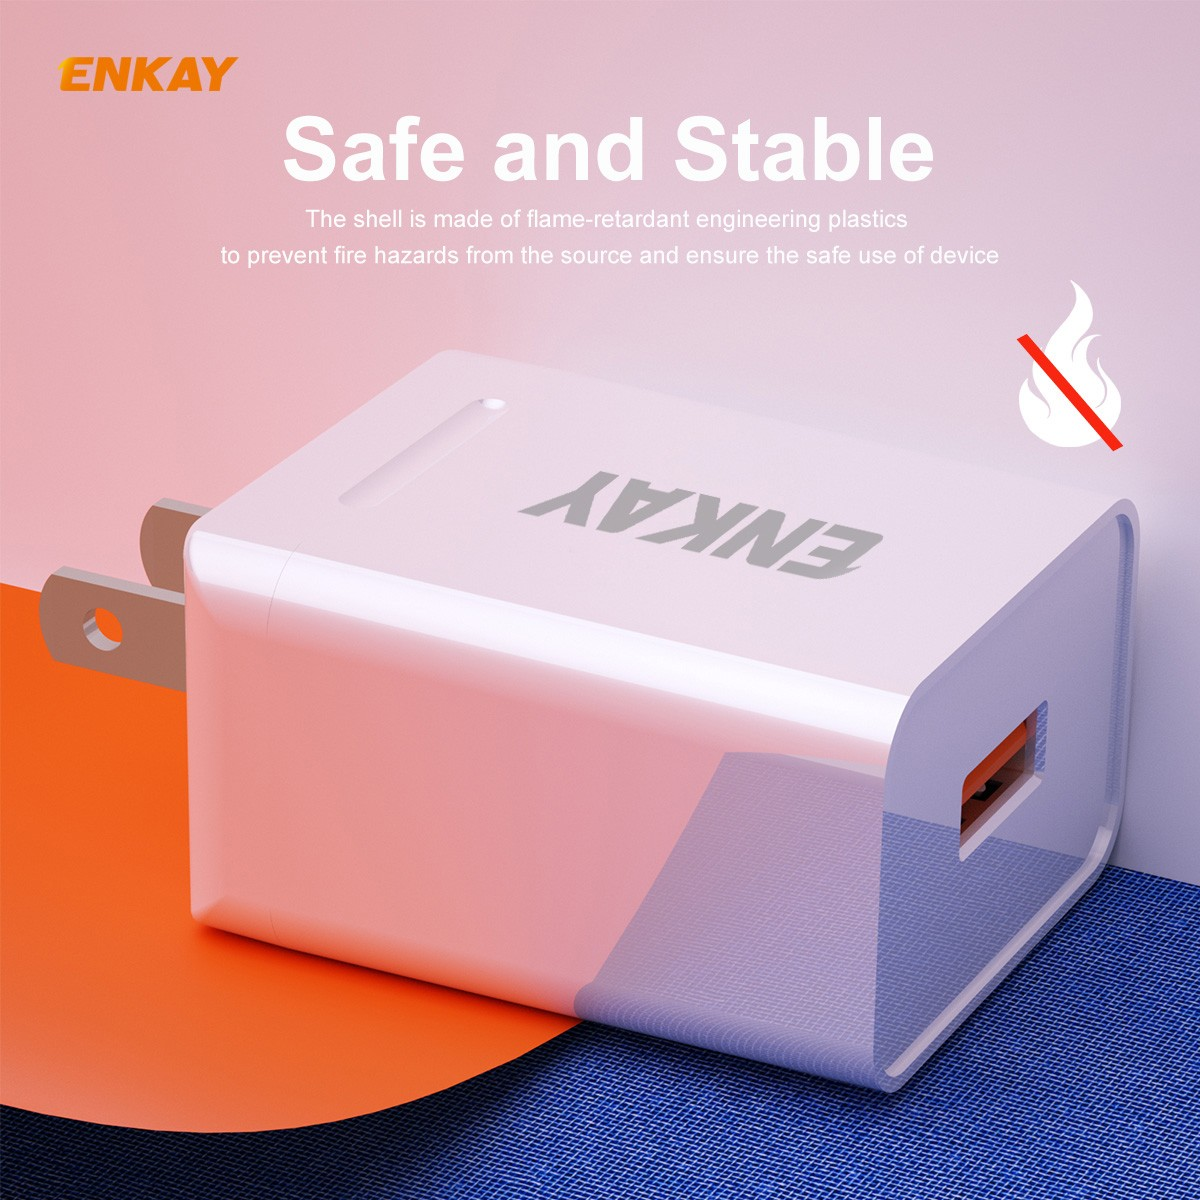 ENKAY Hat-Prince US Plug Kit USB 3.0 Fast Charge 18W 3A Charger + 1M 3A 8-Pin Quick Charge Cable - White